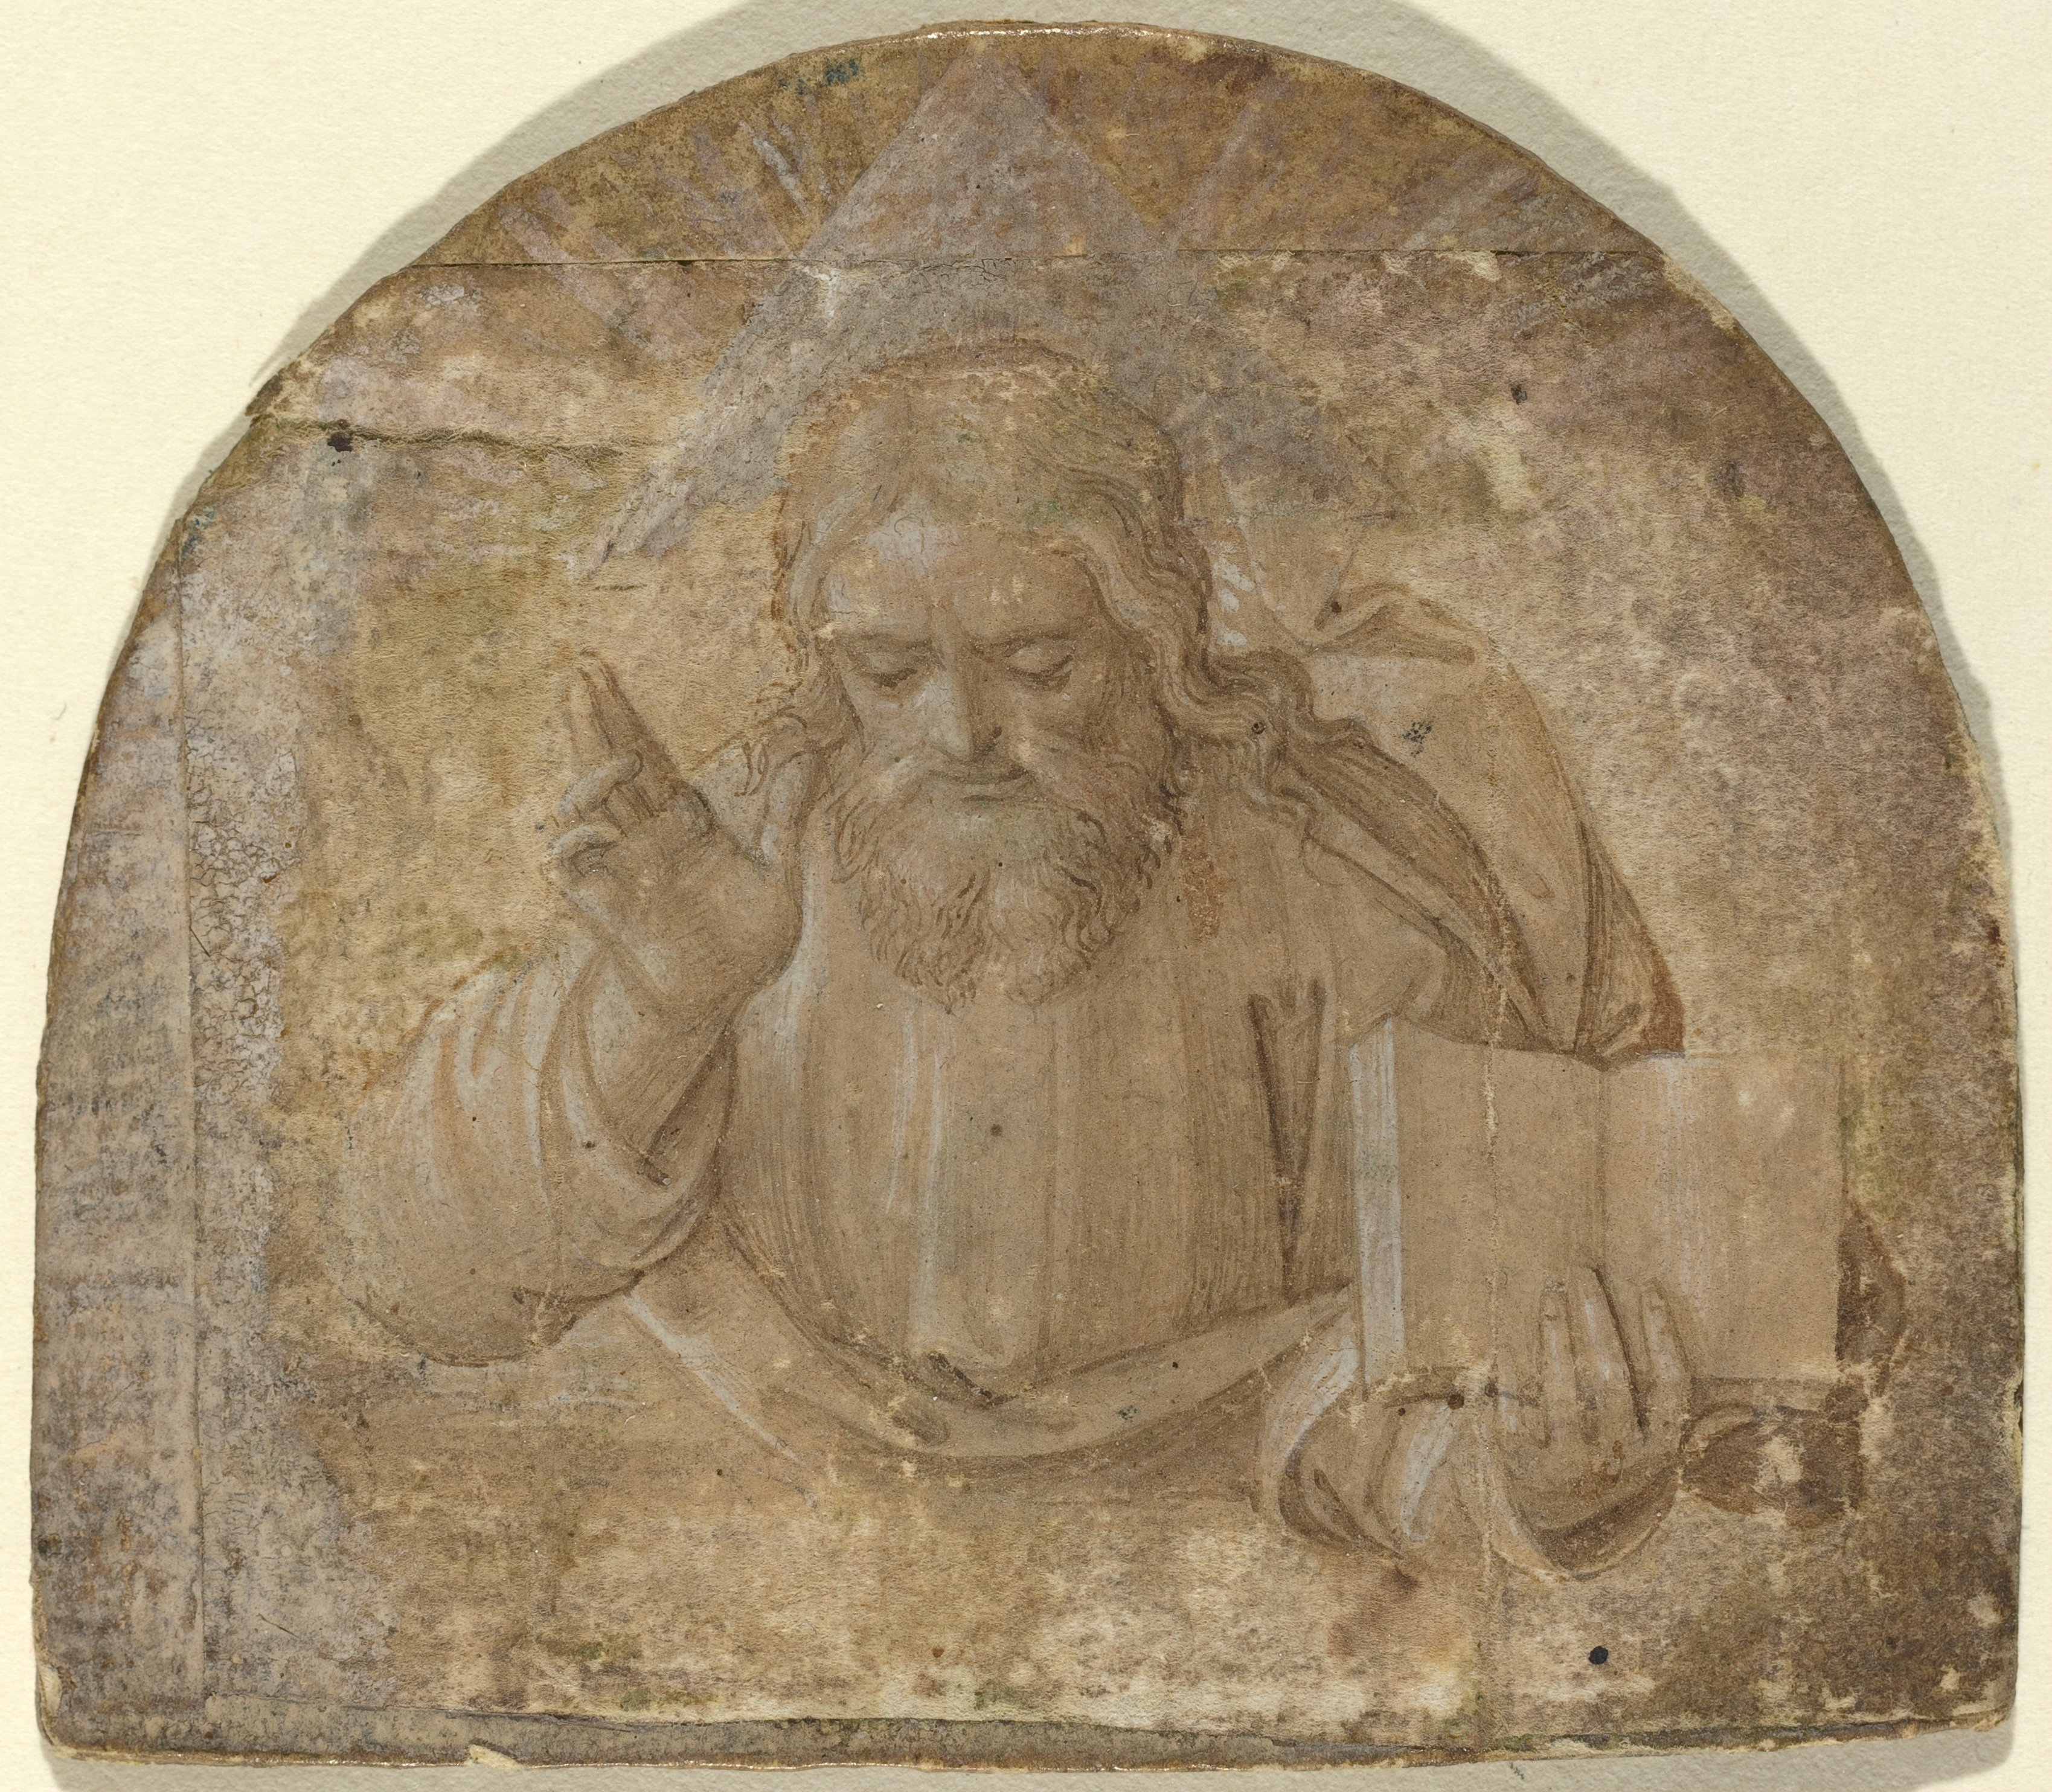 File:God the Father with His Right Hand Raised in Blessing.jpg